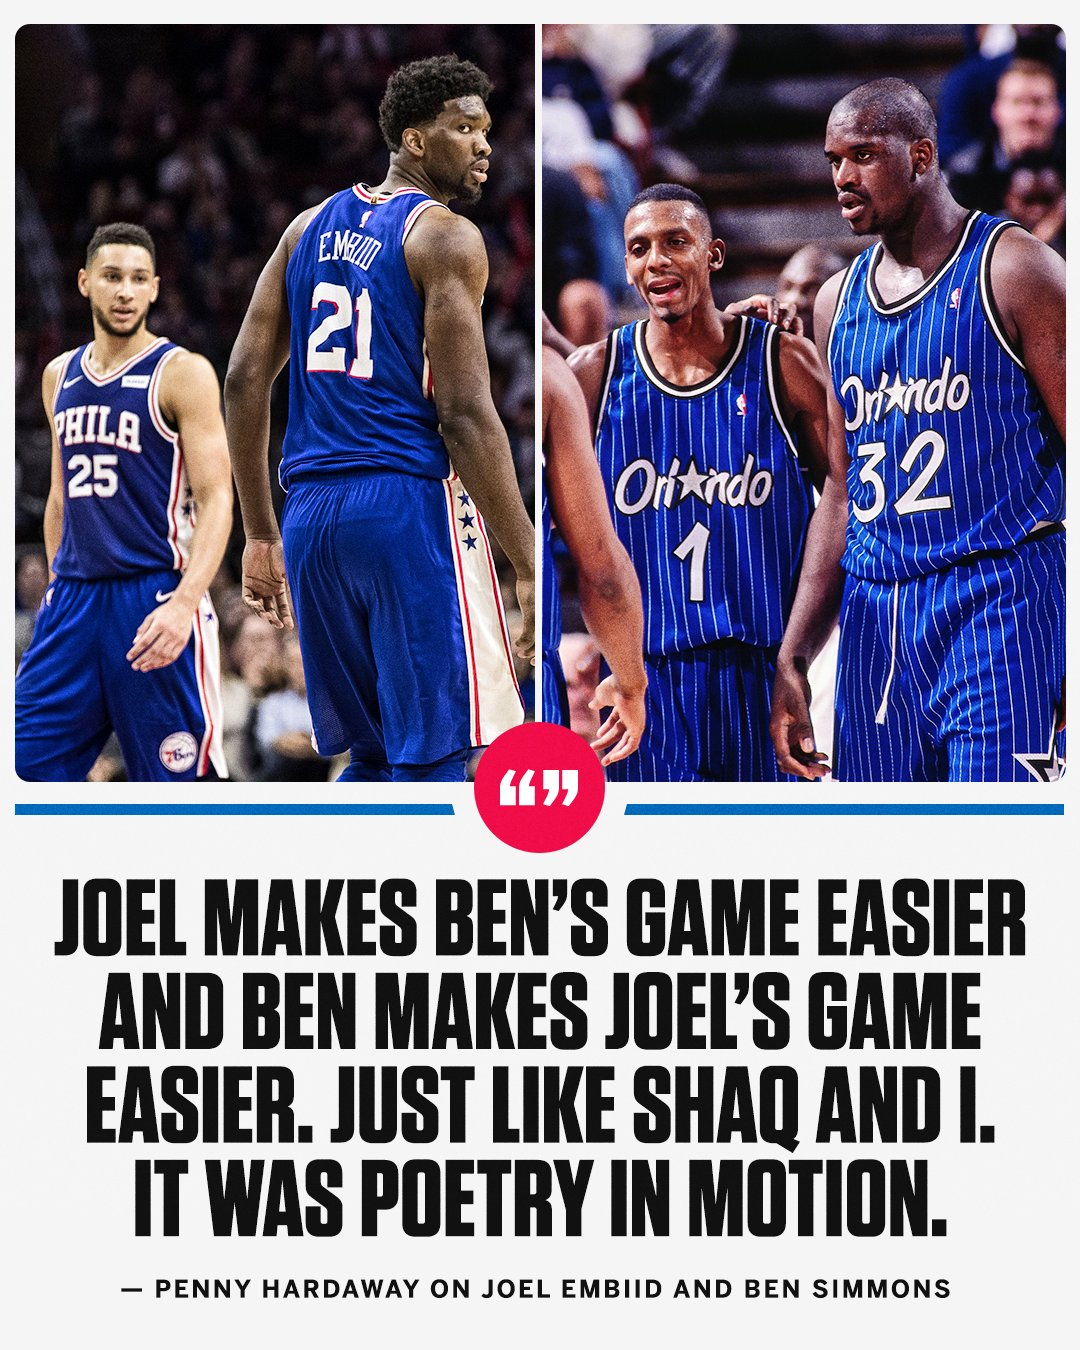 Simmons and Embiid ... like magic.  (Just ask Penny) https://t.co/2BRFNuj52s